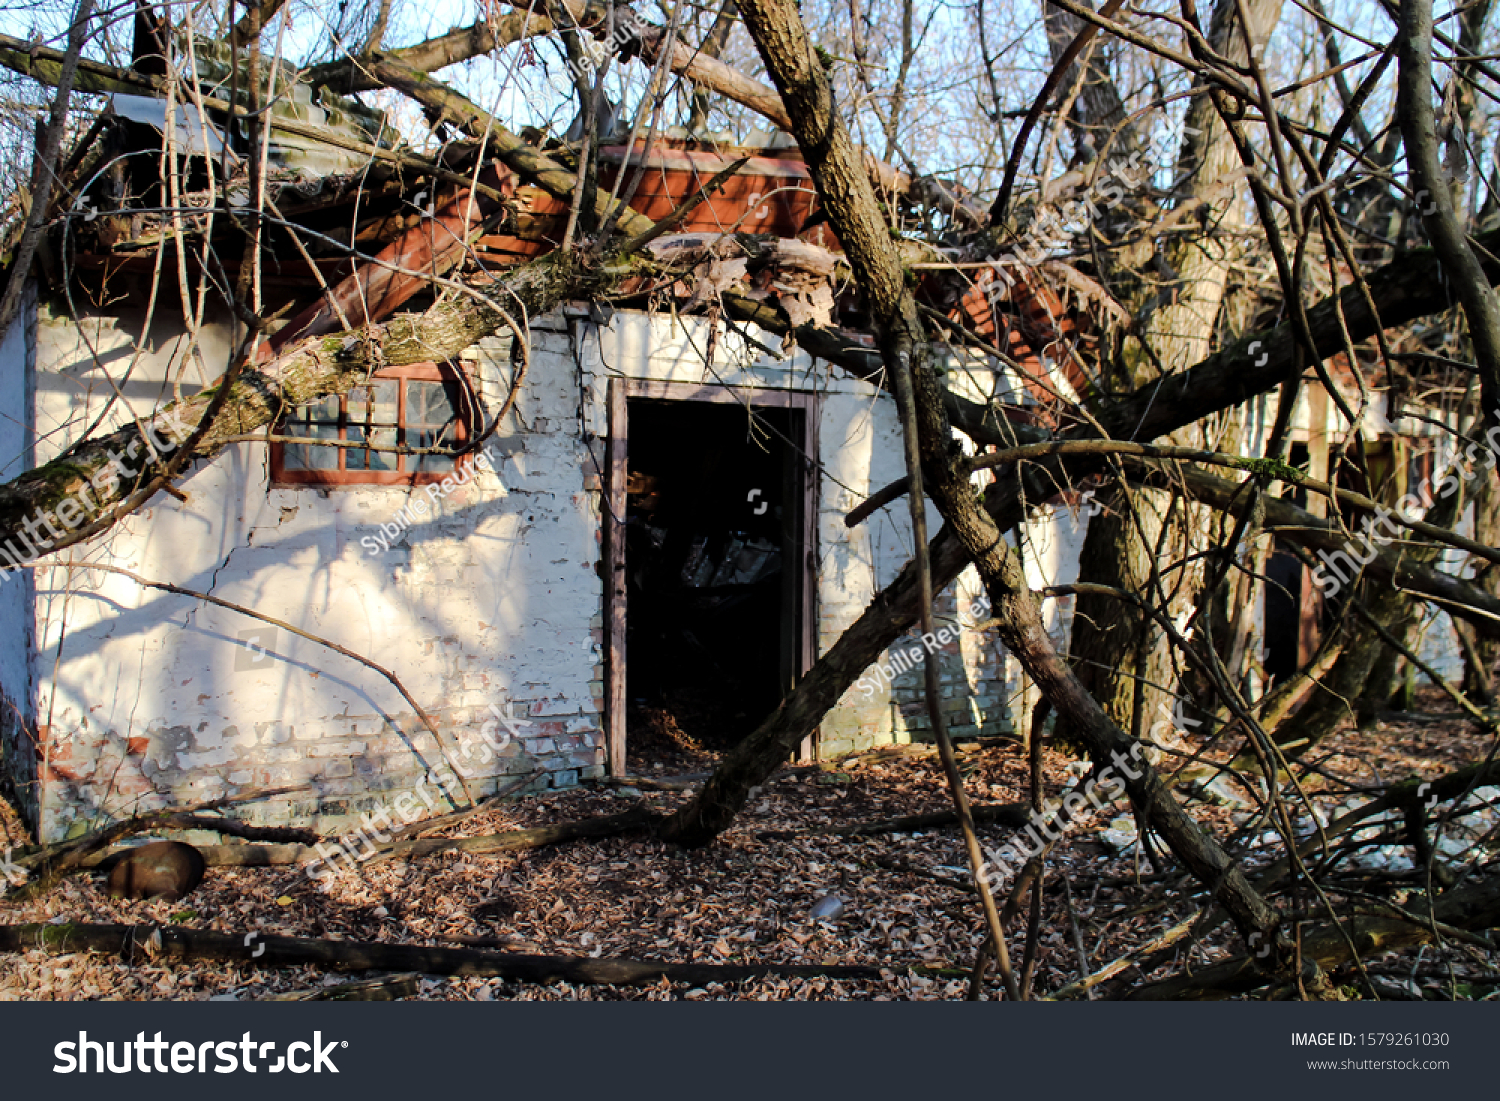 stock-photo-decaying-and-overgrown-ruins